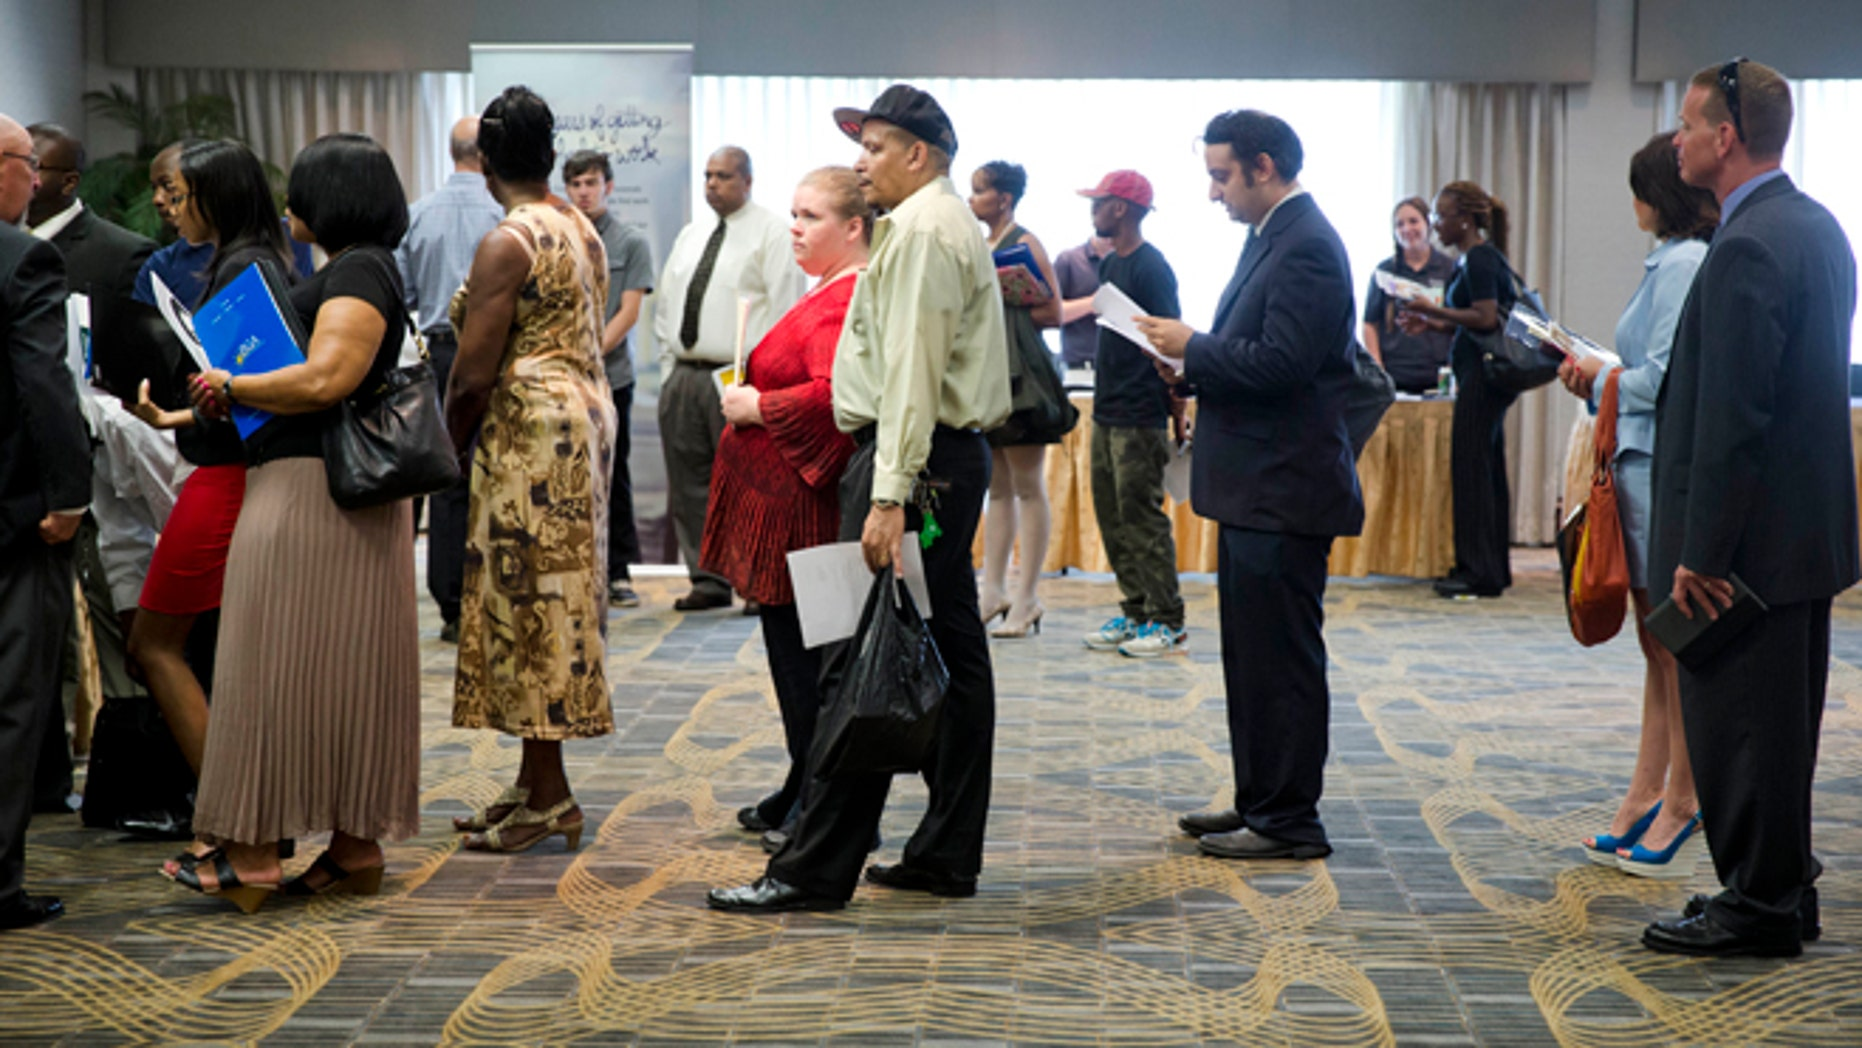 In this June 23, 2014 photo, people wait in line to meet with recruiters during a job fair in Philadelphia.